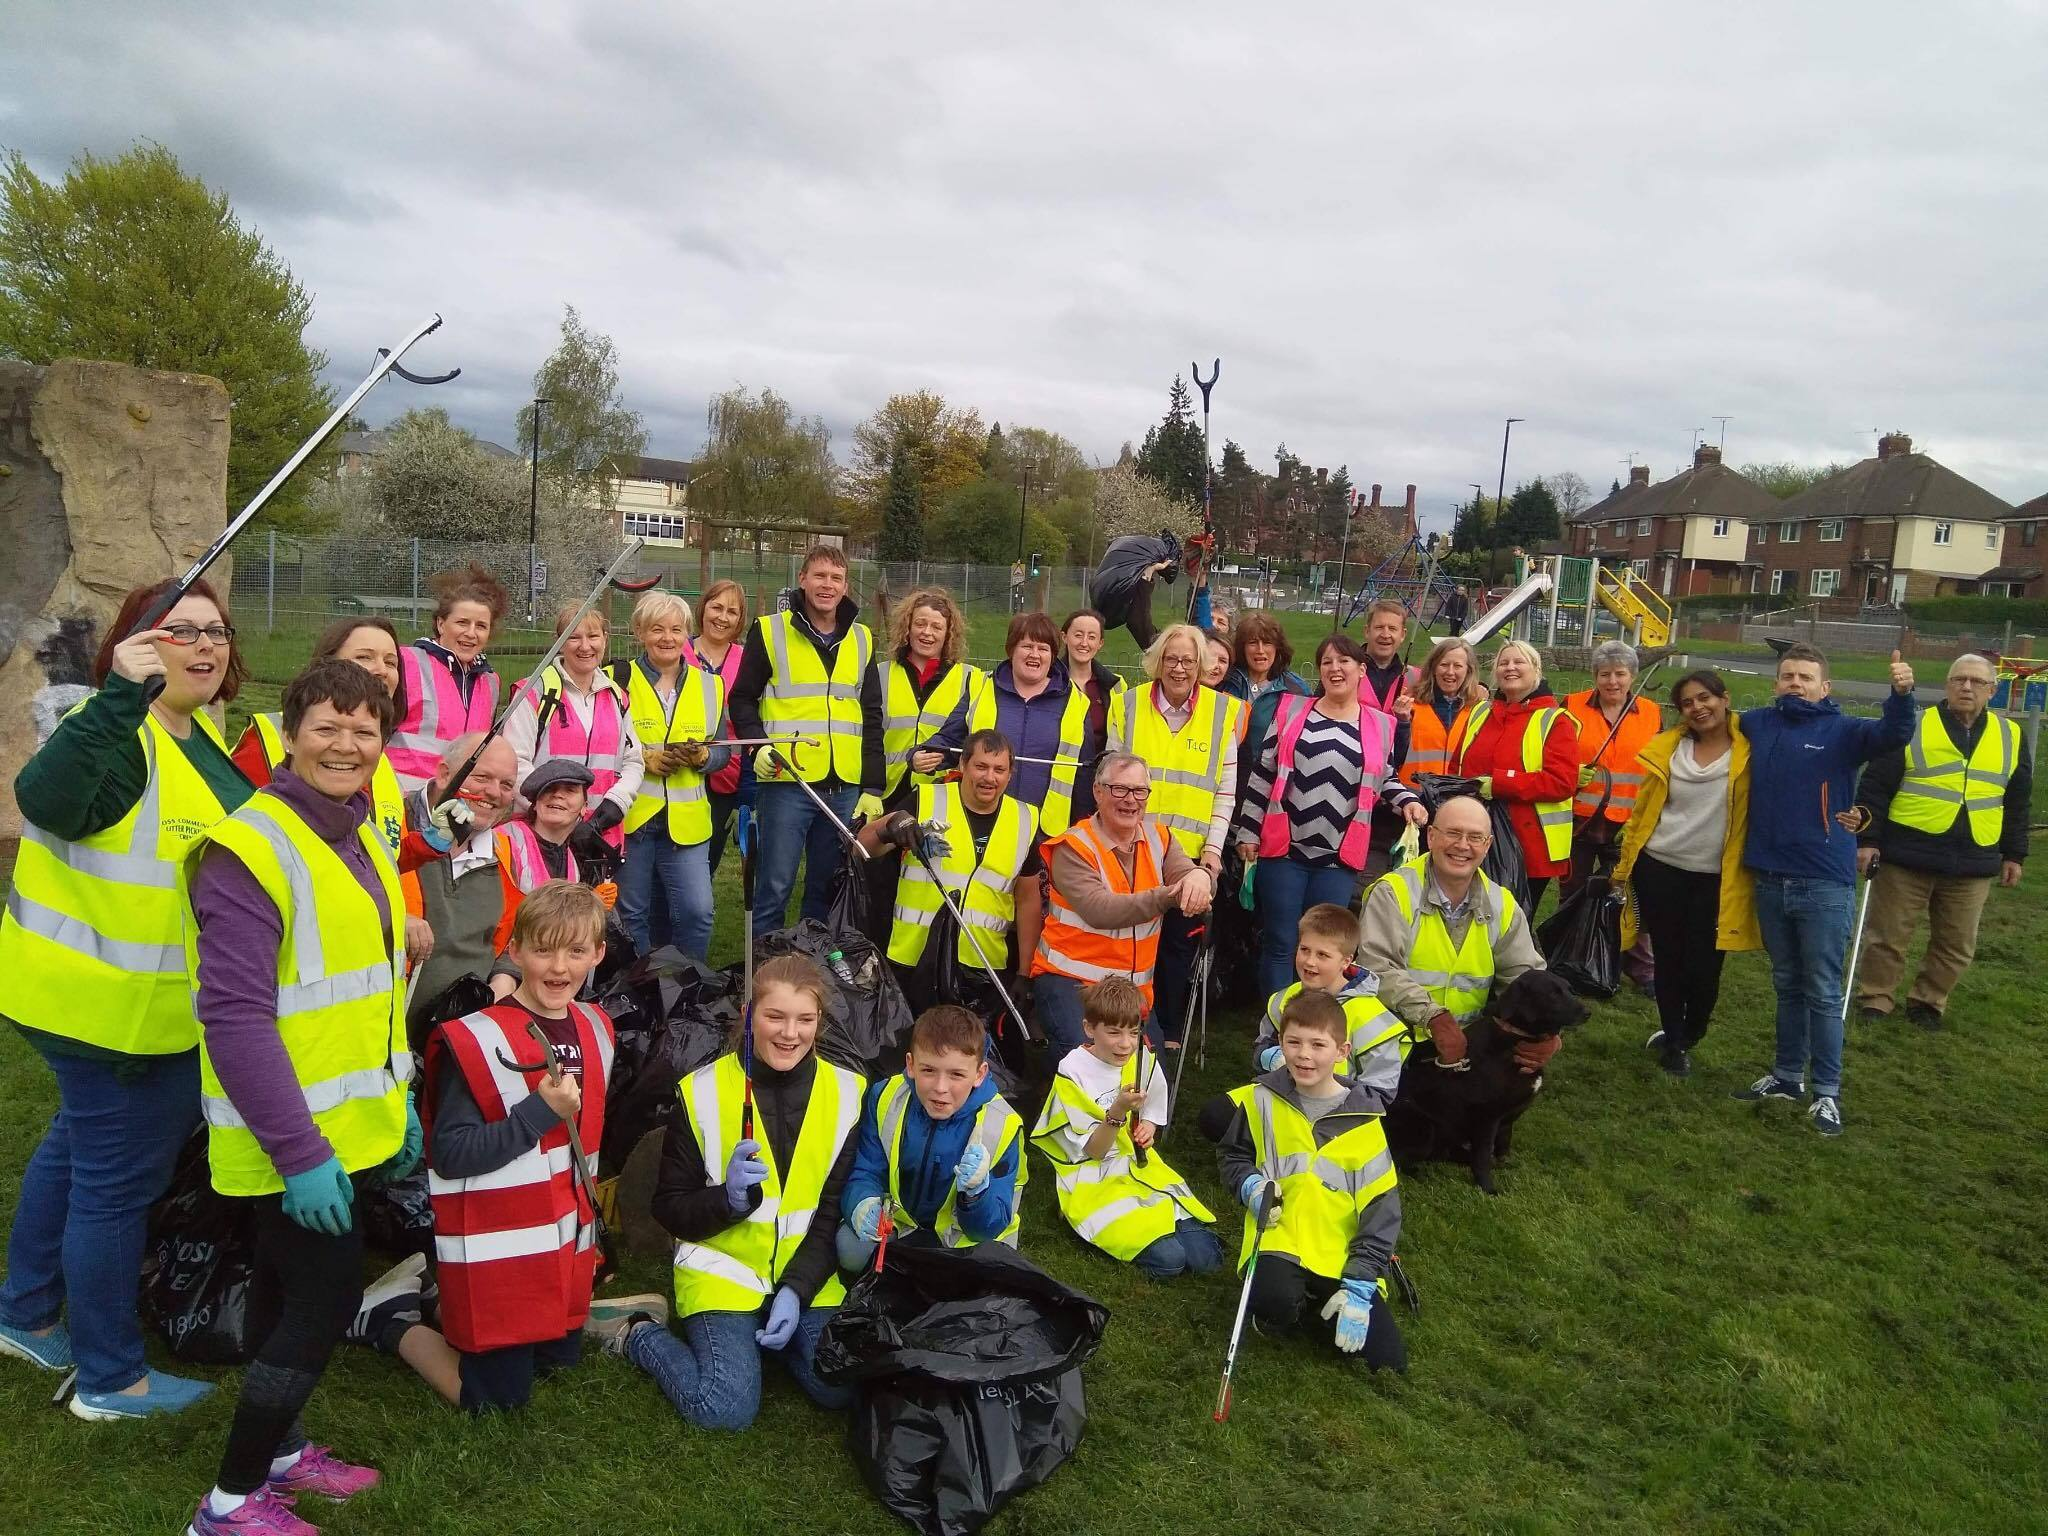 The group of litter pickers at Old School Lane playing fields in Hereford. Photo by Nickie Bates